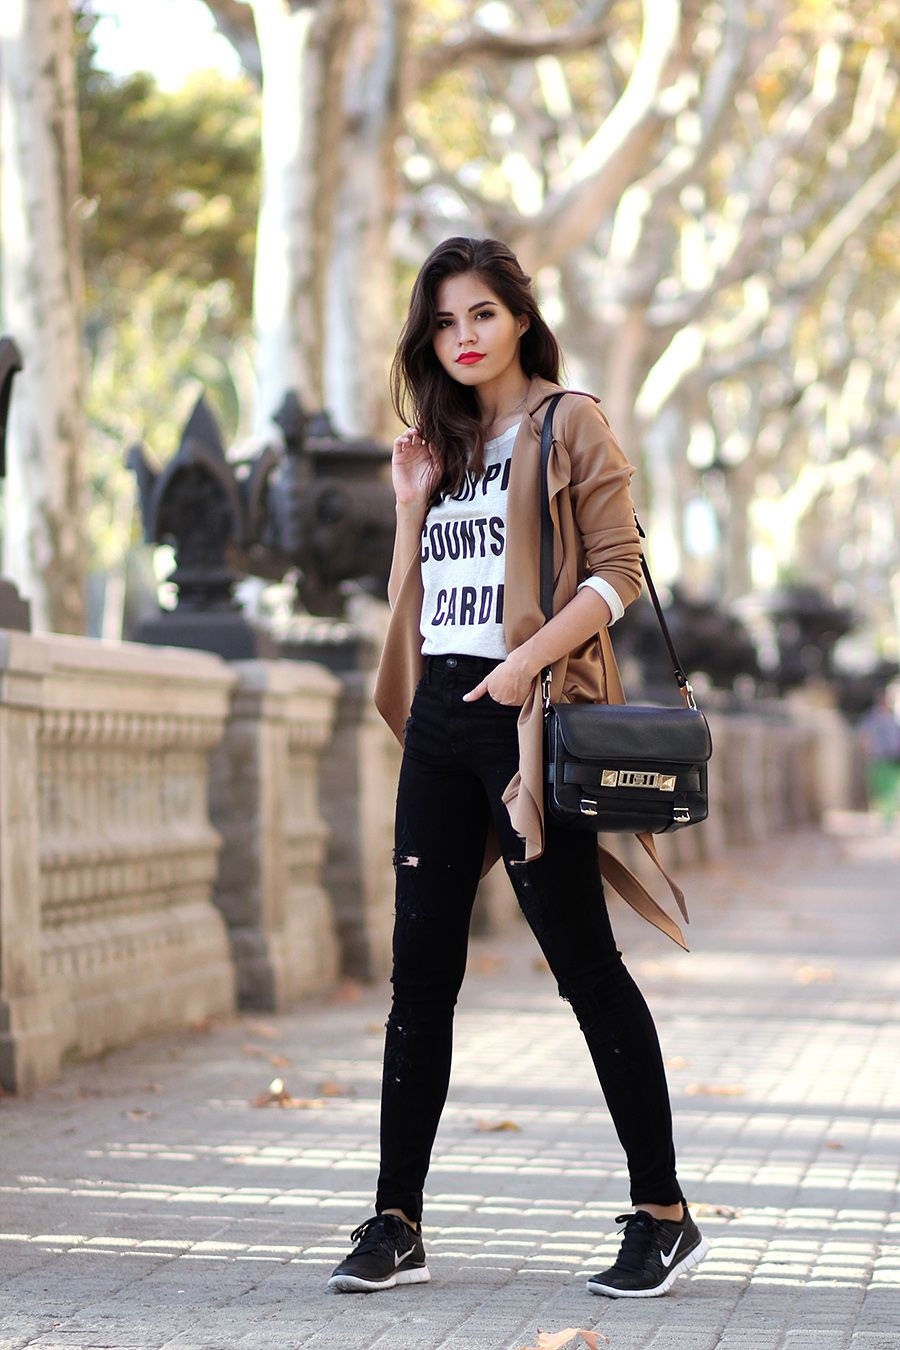 Surviving bad days | Fake Leather blog. Nike Shoes OutfitsSneakers Outfit  NikeNike Casual ...